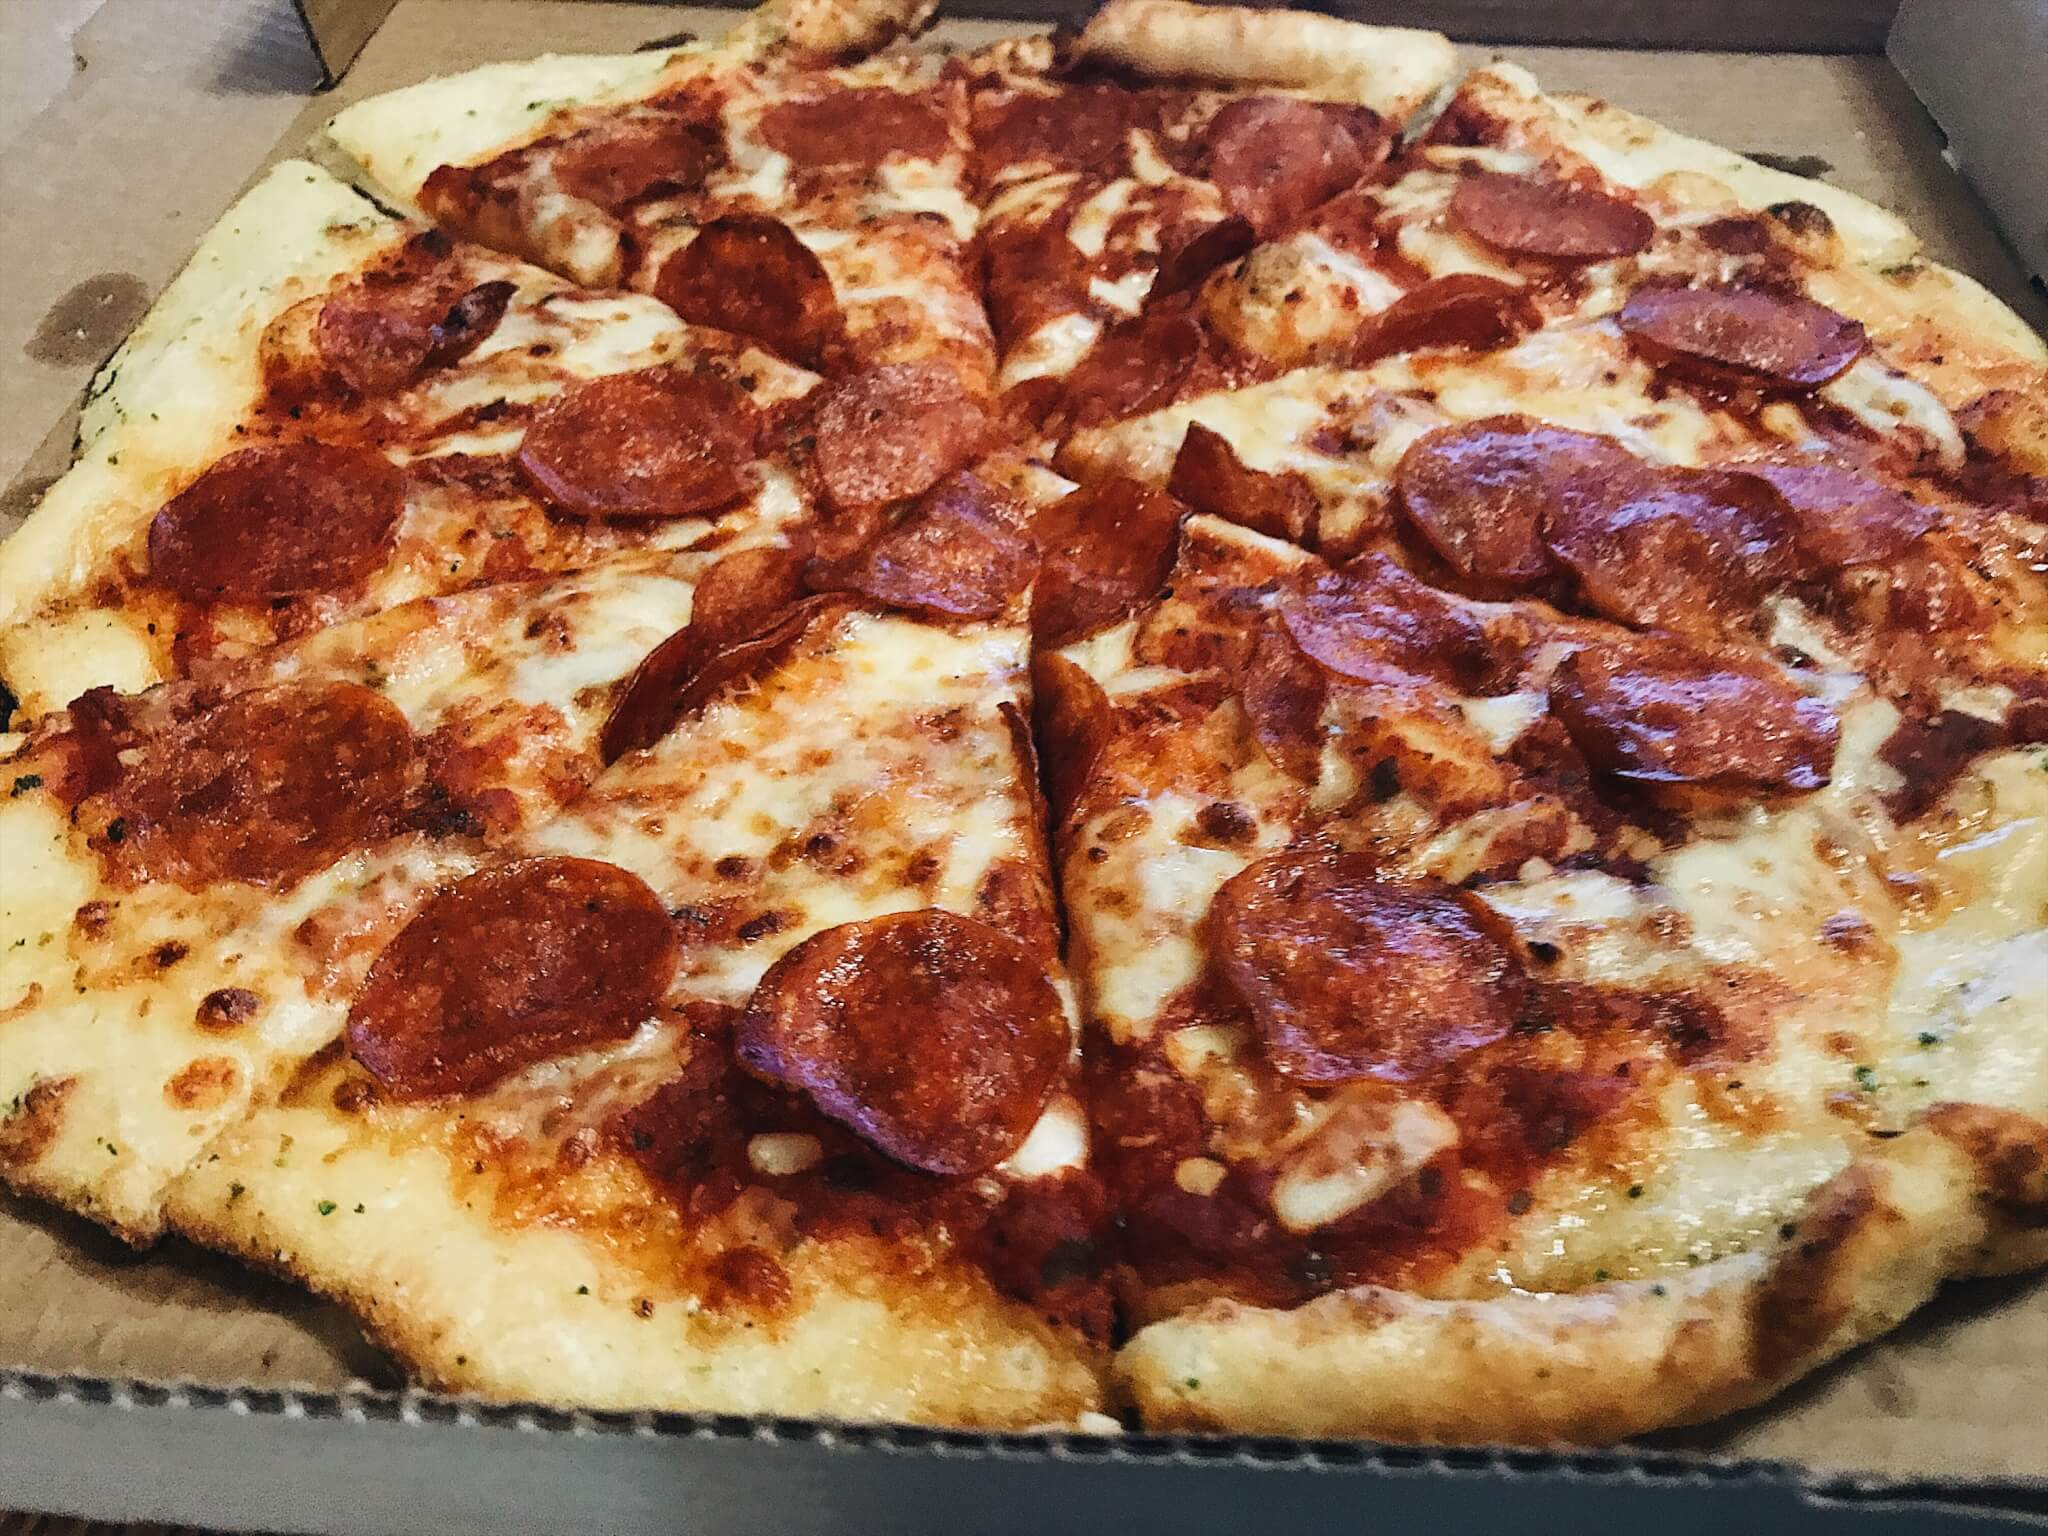 Doorzza delivers piping hot, gourmet pizzas with fresh ingredients.